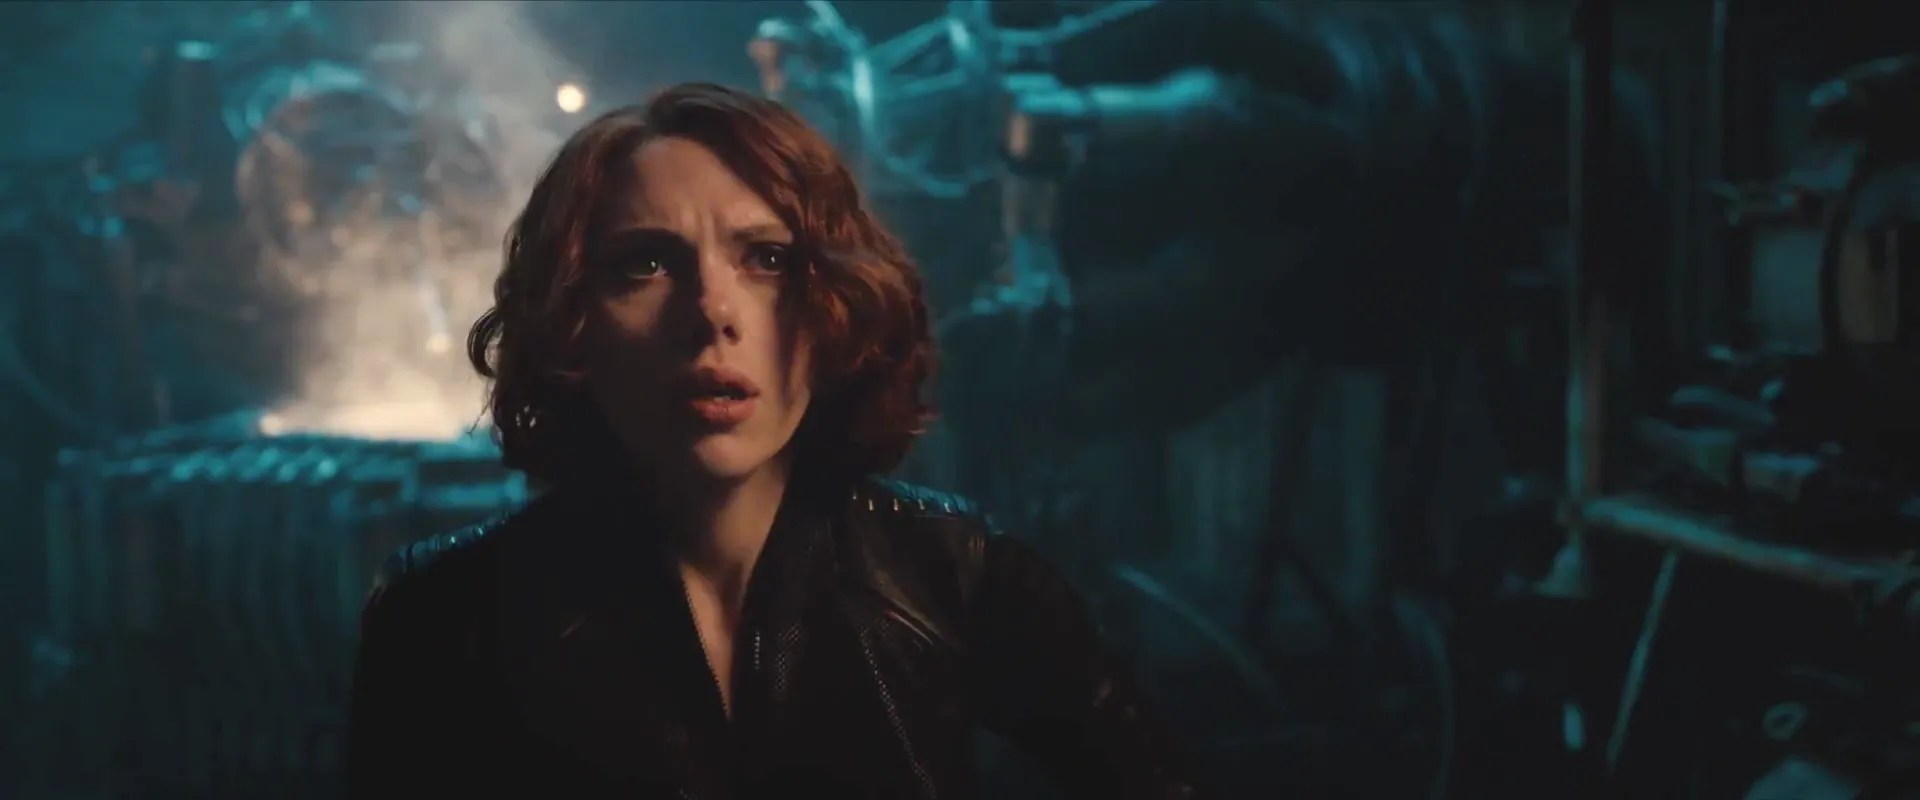 https://i0.wp.com/cdn.collider.com/wp-content/uploads/avengers-age-of-ultron-trailer-screengrab-25-scarlett-johansson.png